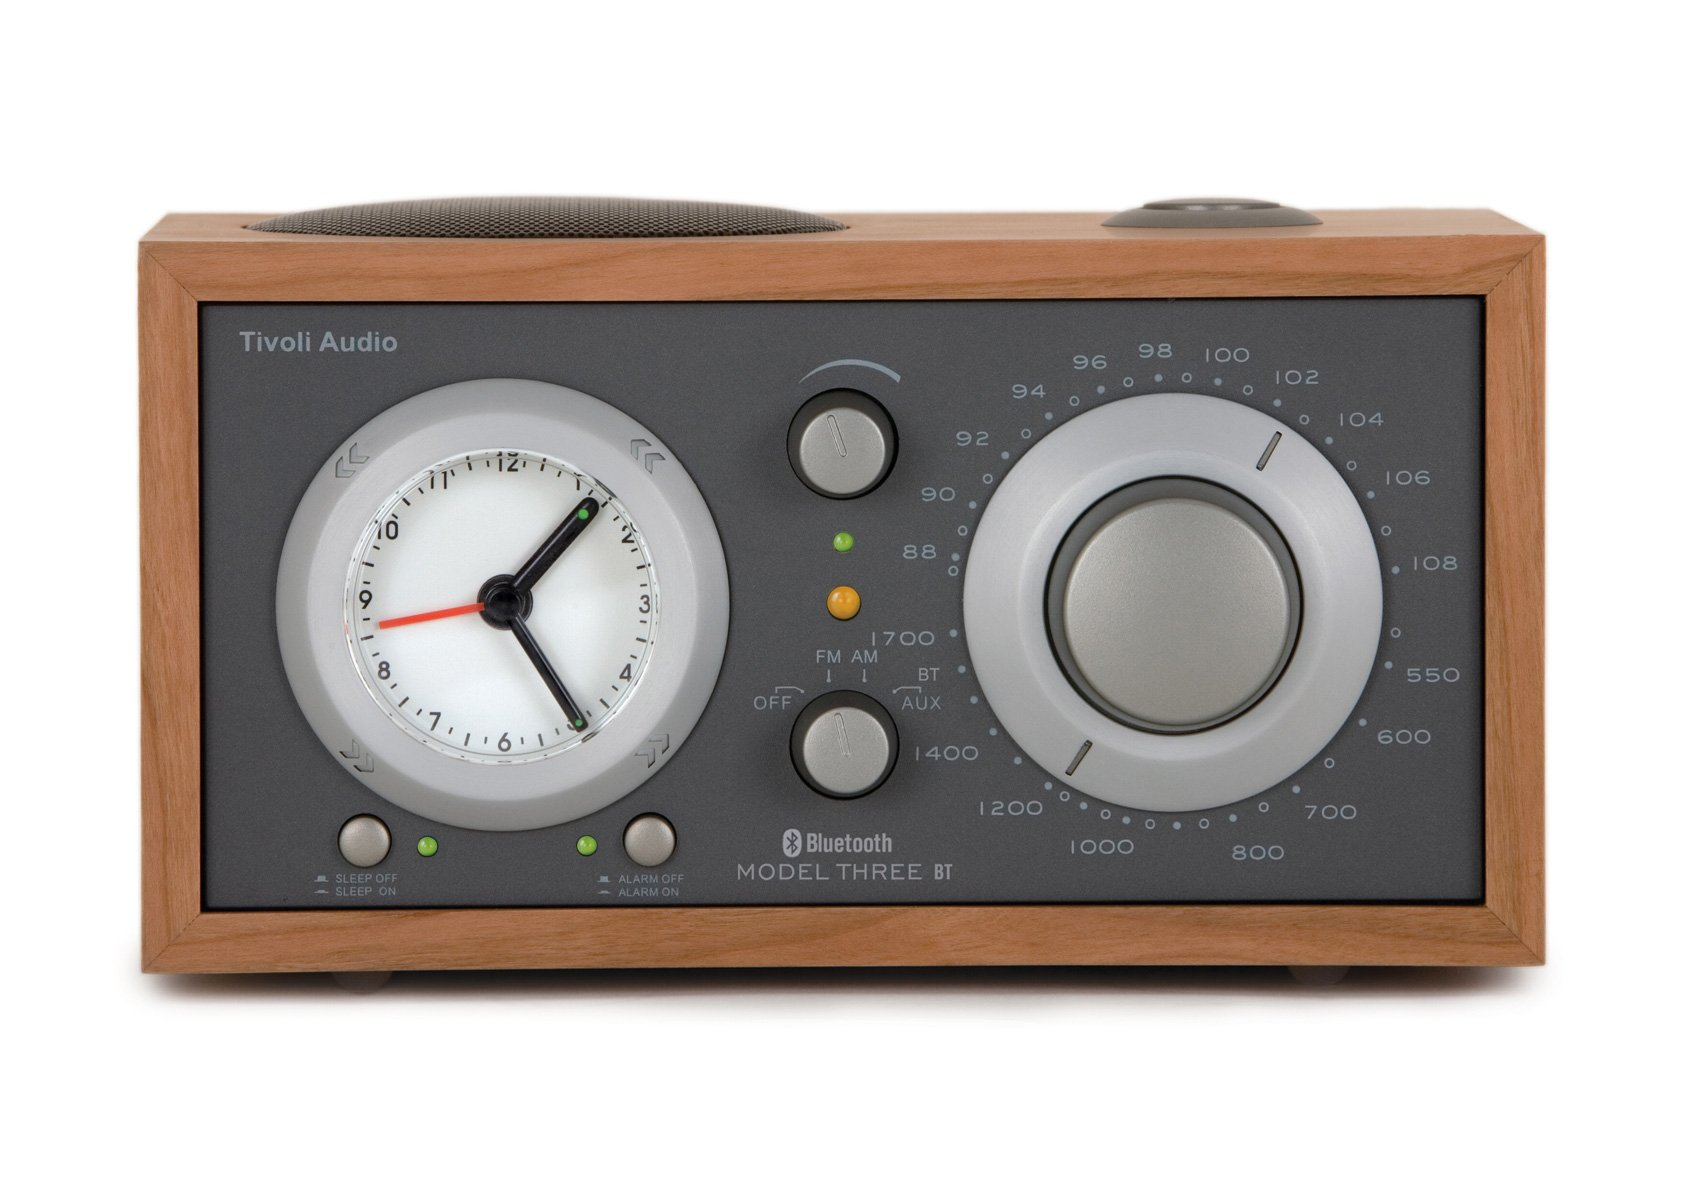 Tivoli Audio Model Three BT AM/FM/Bluetooth Clock Radio - Cherry/Metallic Taupe